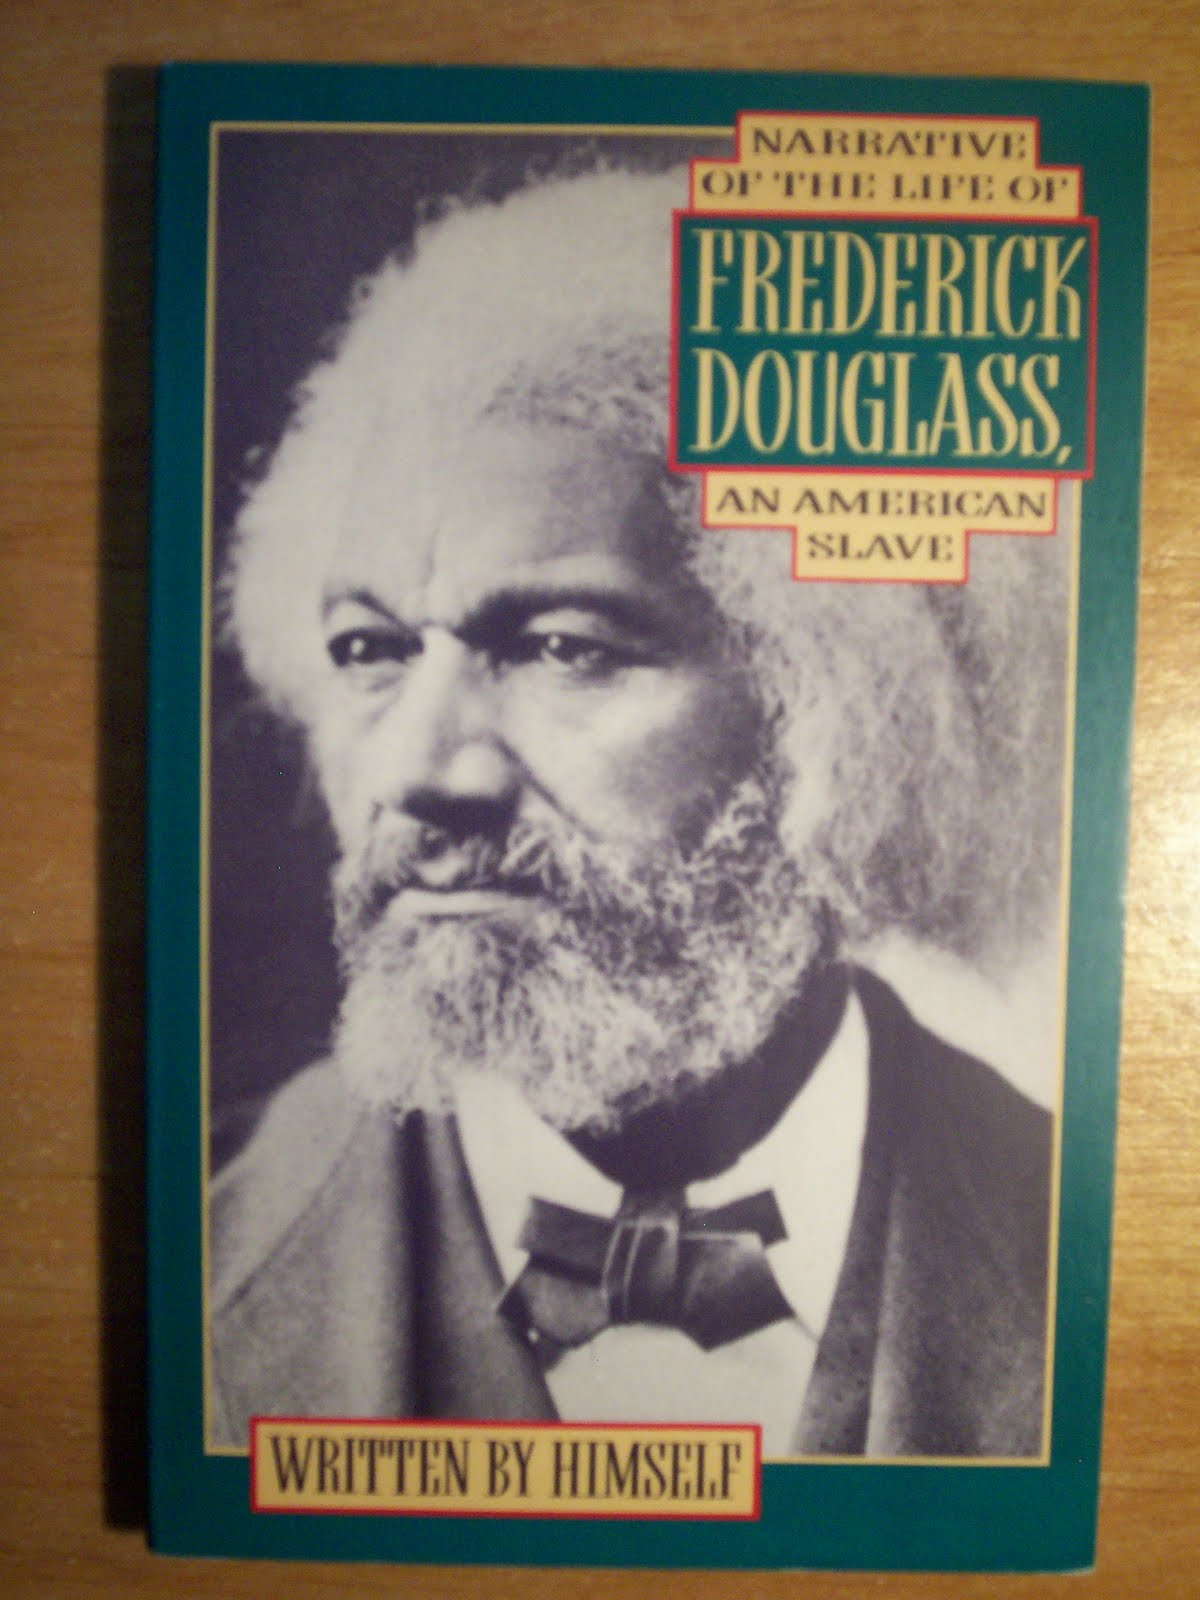 door stop novels required work narrative of the life of required work narrative of the life of frederick douglass an american slave